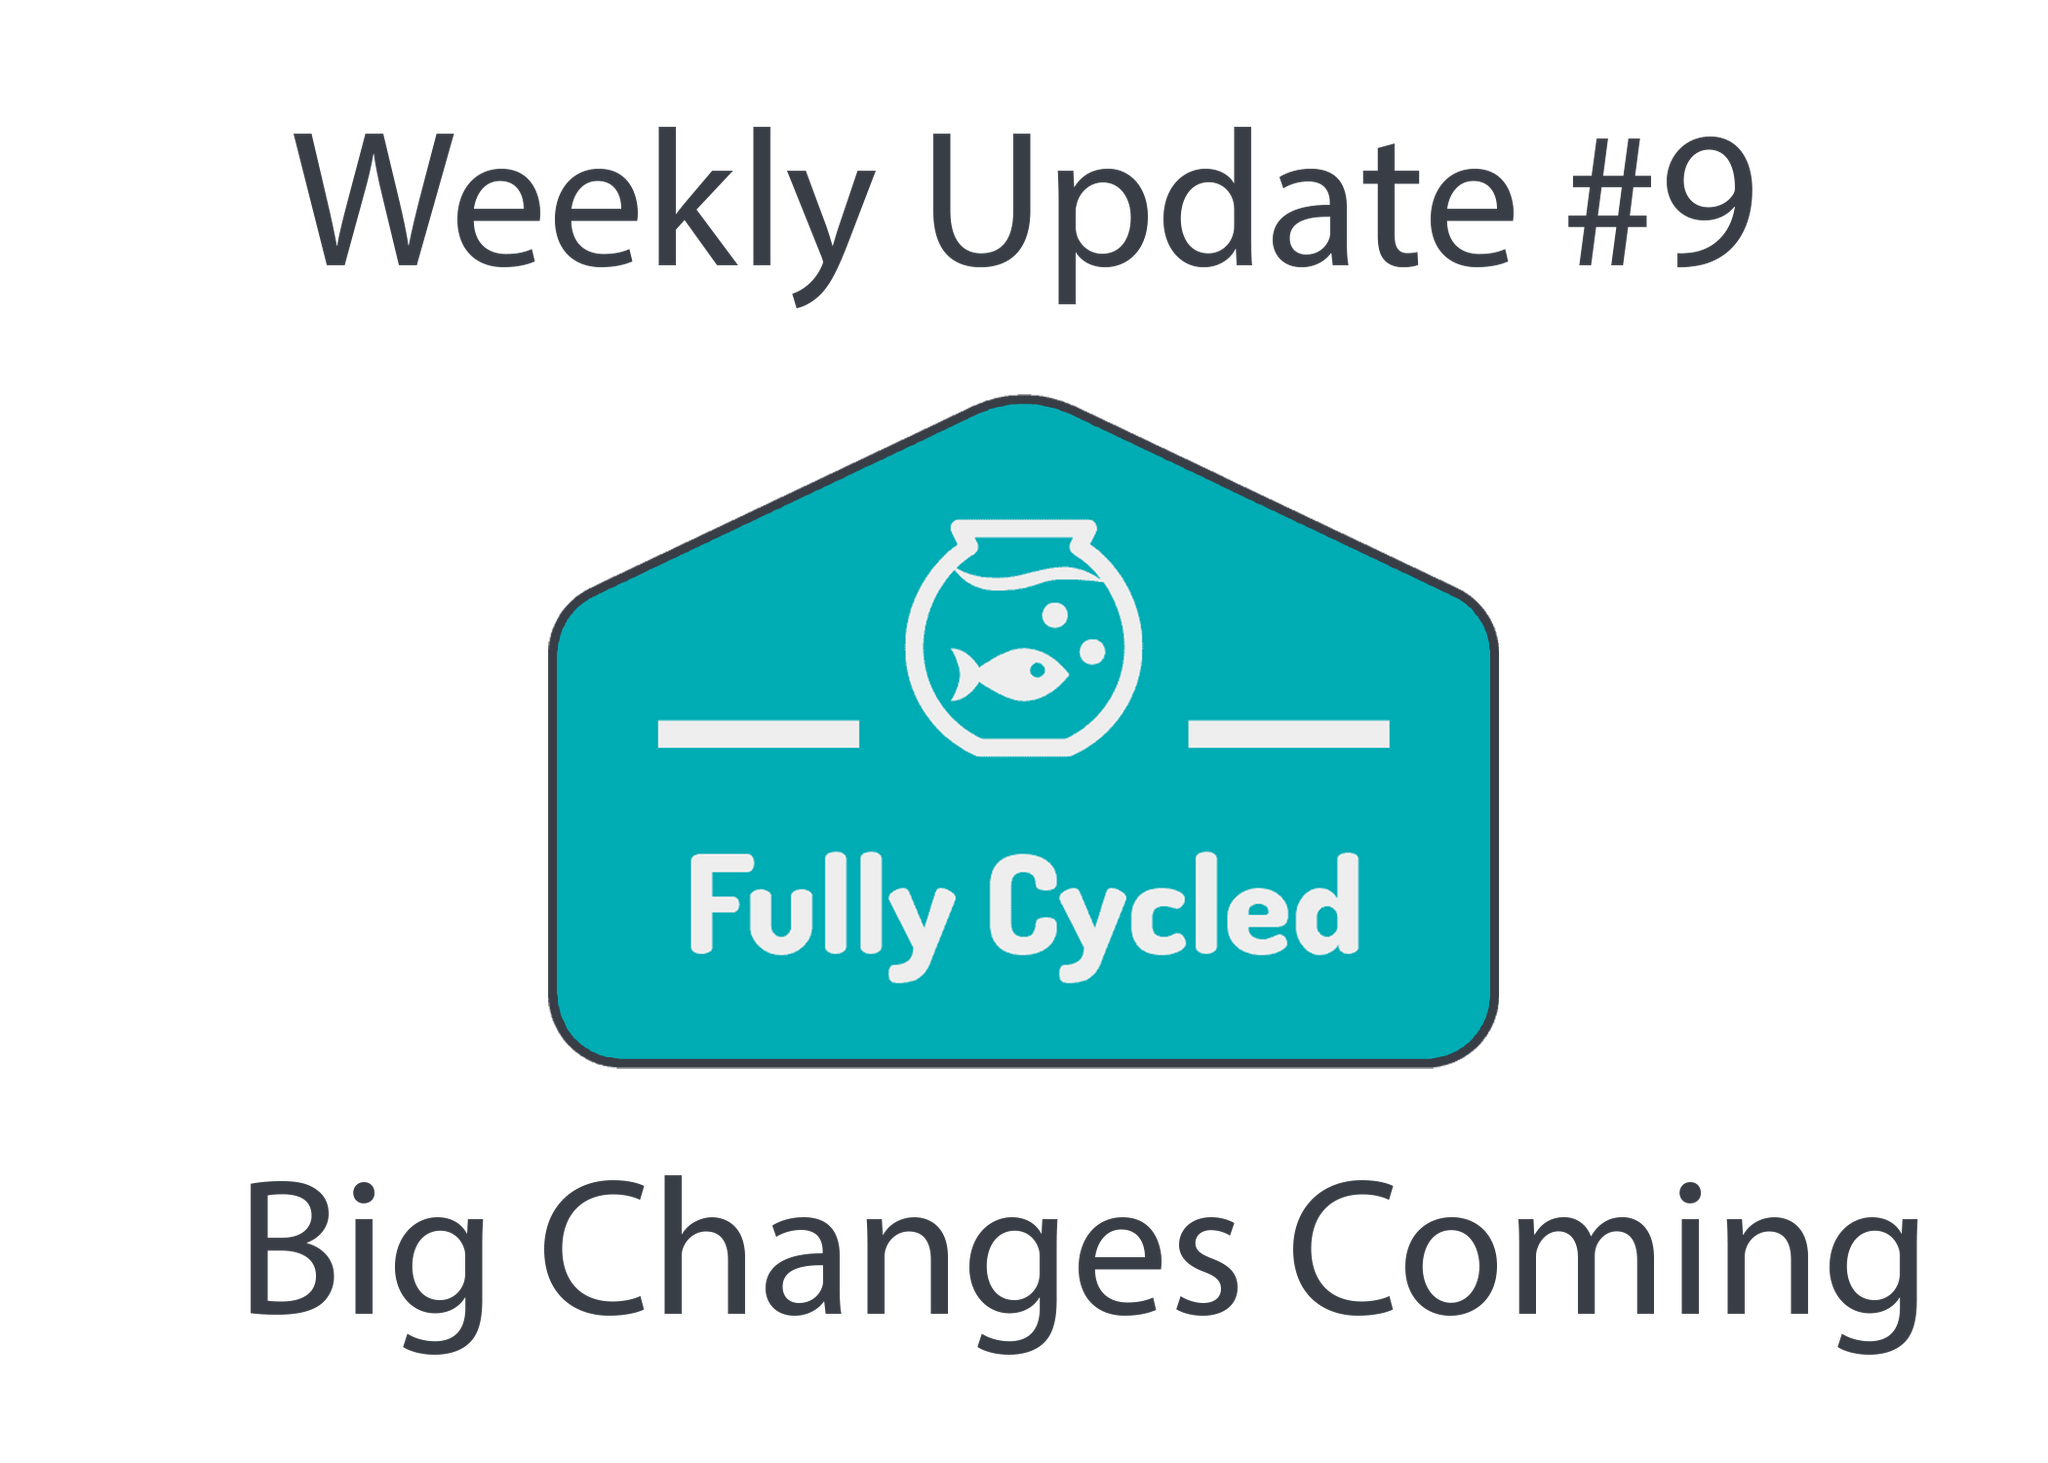 Weekly Update #9 - Big changes are coming